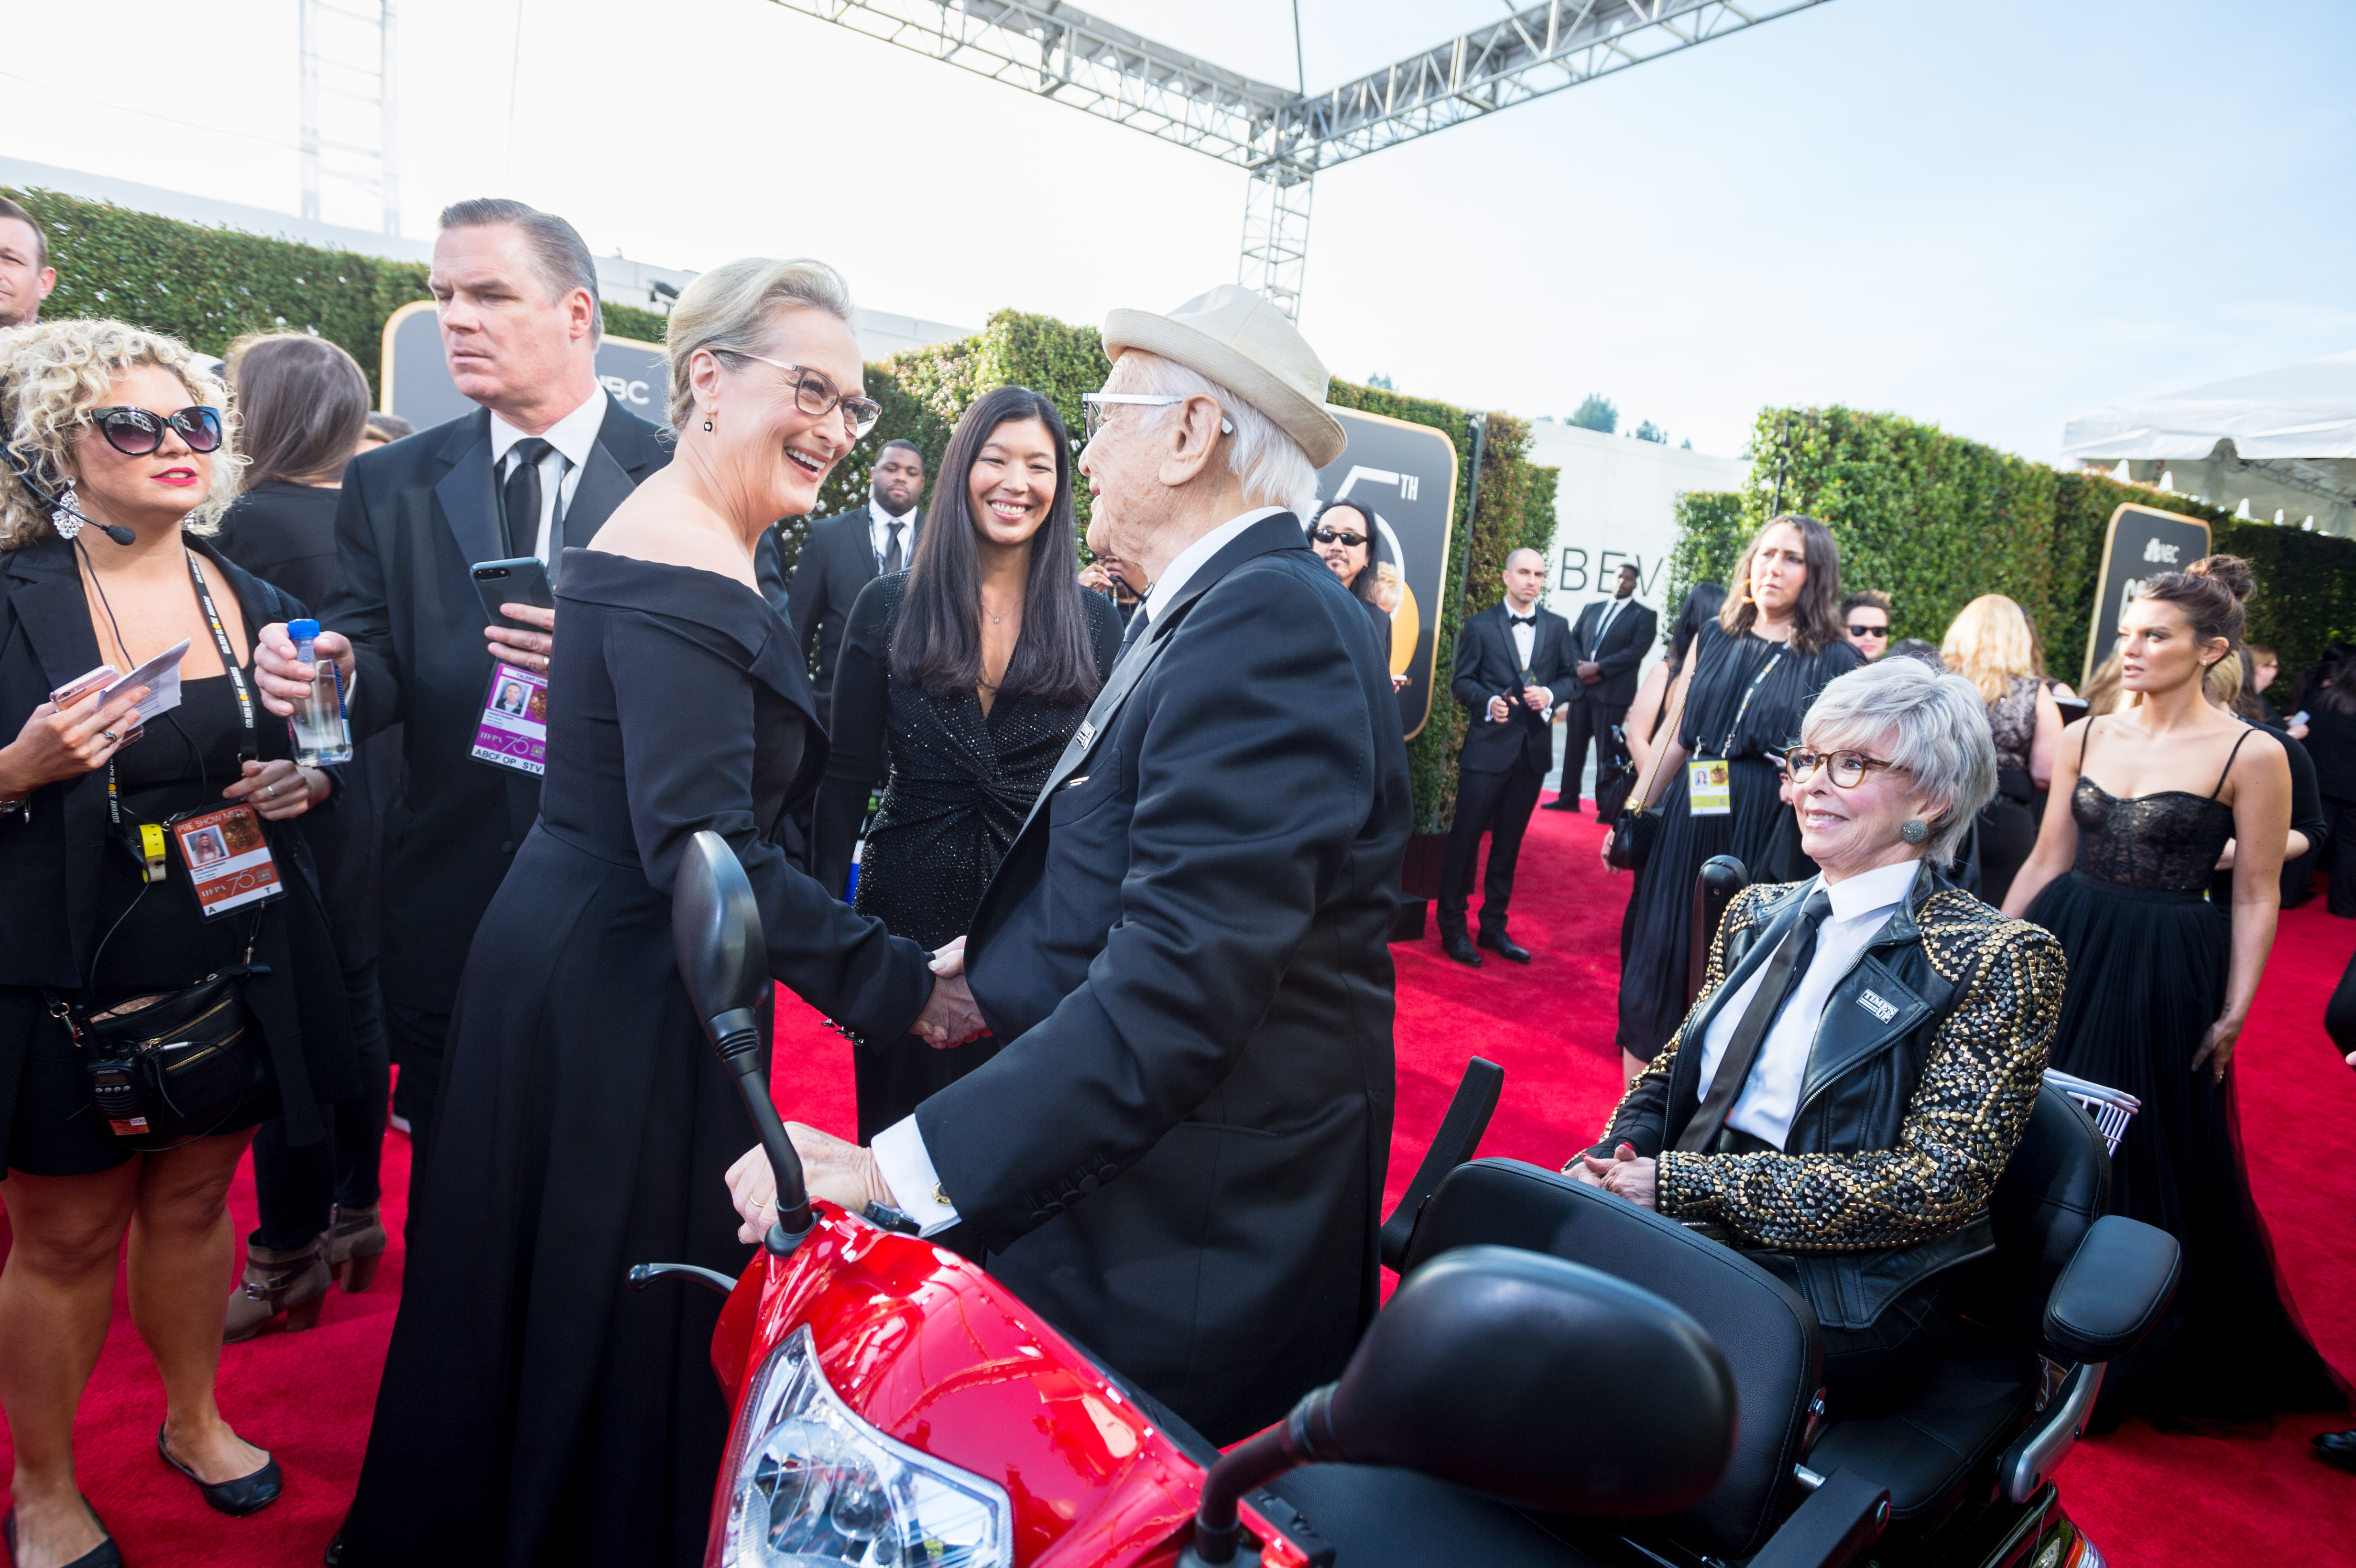 "Nominated for BEST PERFORMANCE BY AN ACTRESS IN A MOTION PICTURE – DRAMA for her role in ""The Post,"" actress Meryl Streep greets Norman Lear and Rita Moreno on the red carpet of the 75th Annual Golden Globe Awards at the Beverly Hilton in Beverly Hills, CA on Sunday, January 7, 2018."